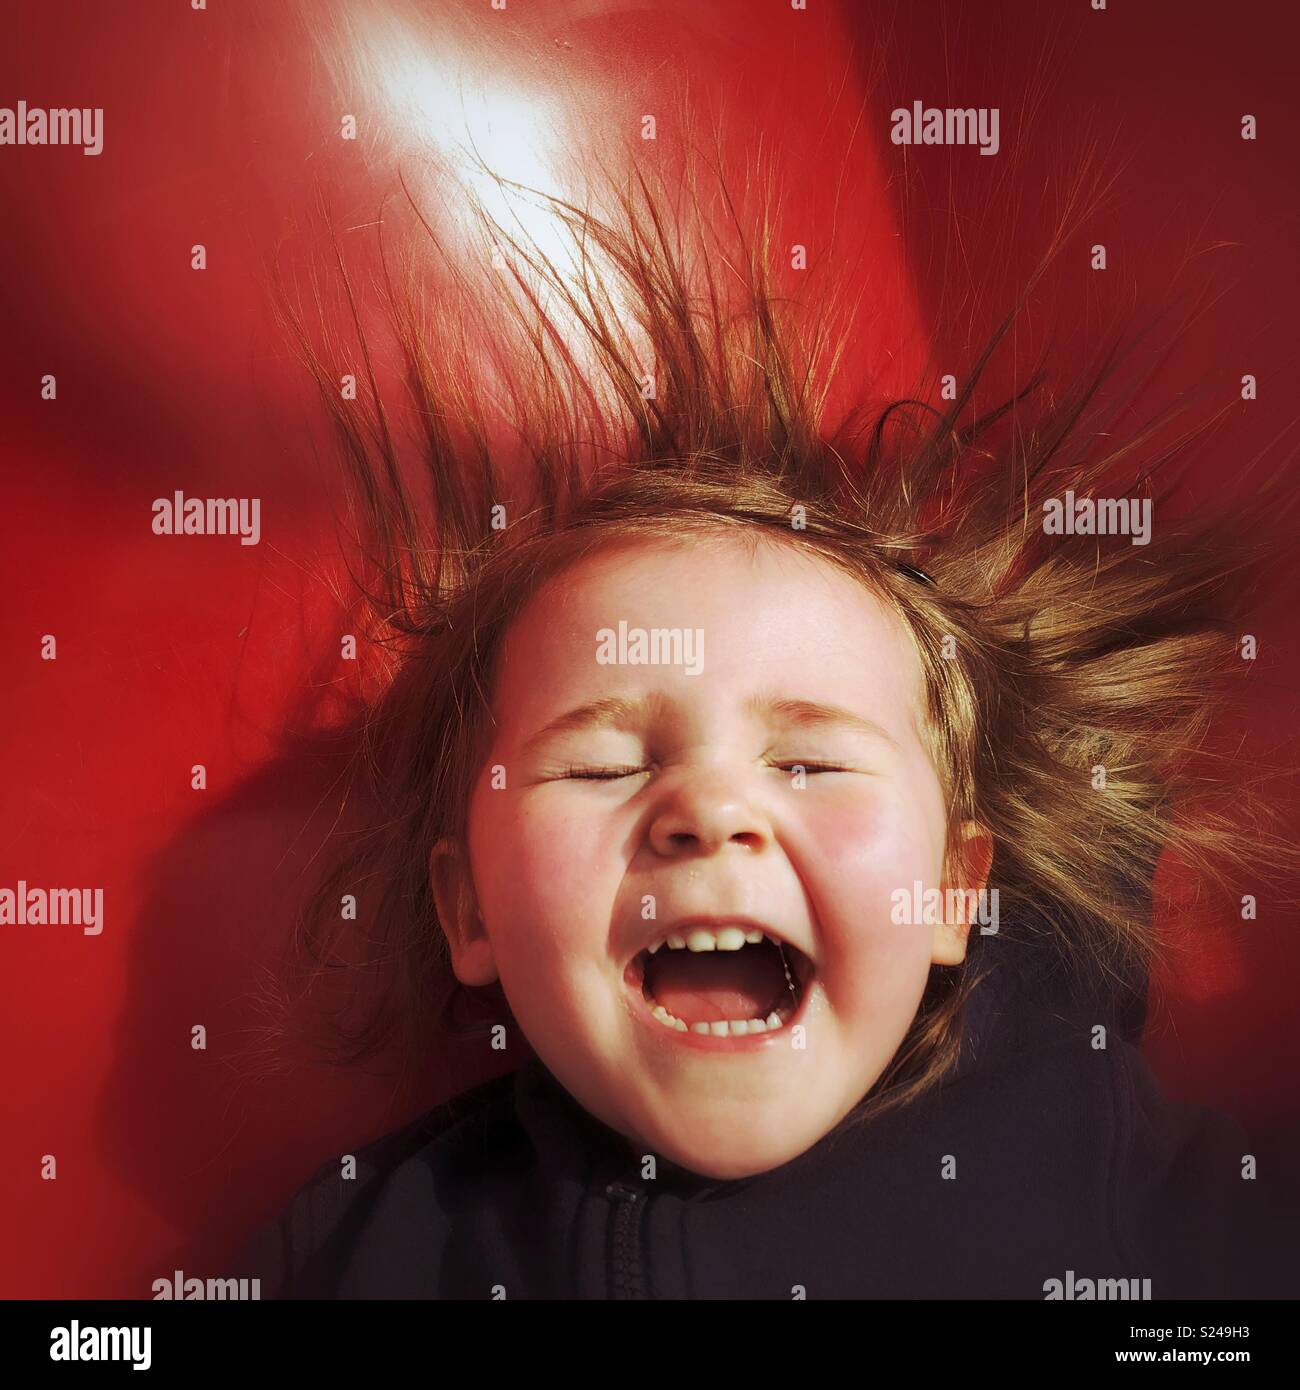 Toddler girl laughing with joy as she slides down a red slide - Stock Image